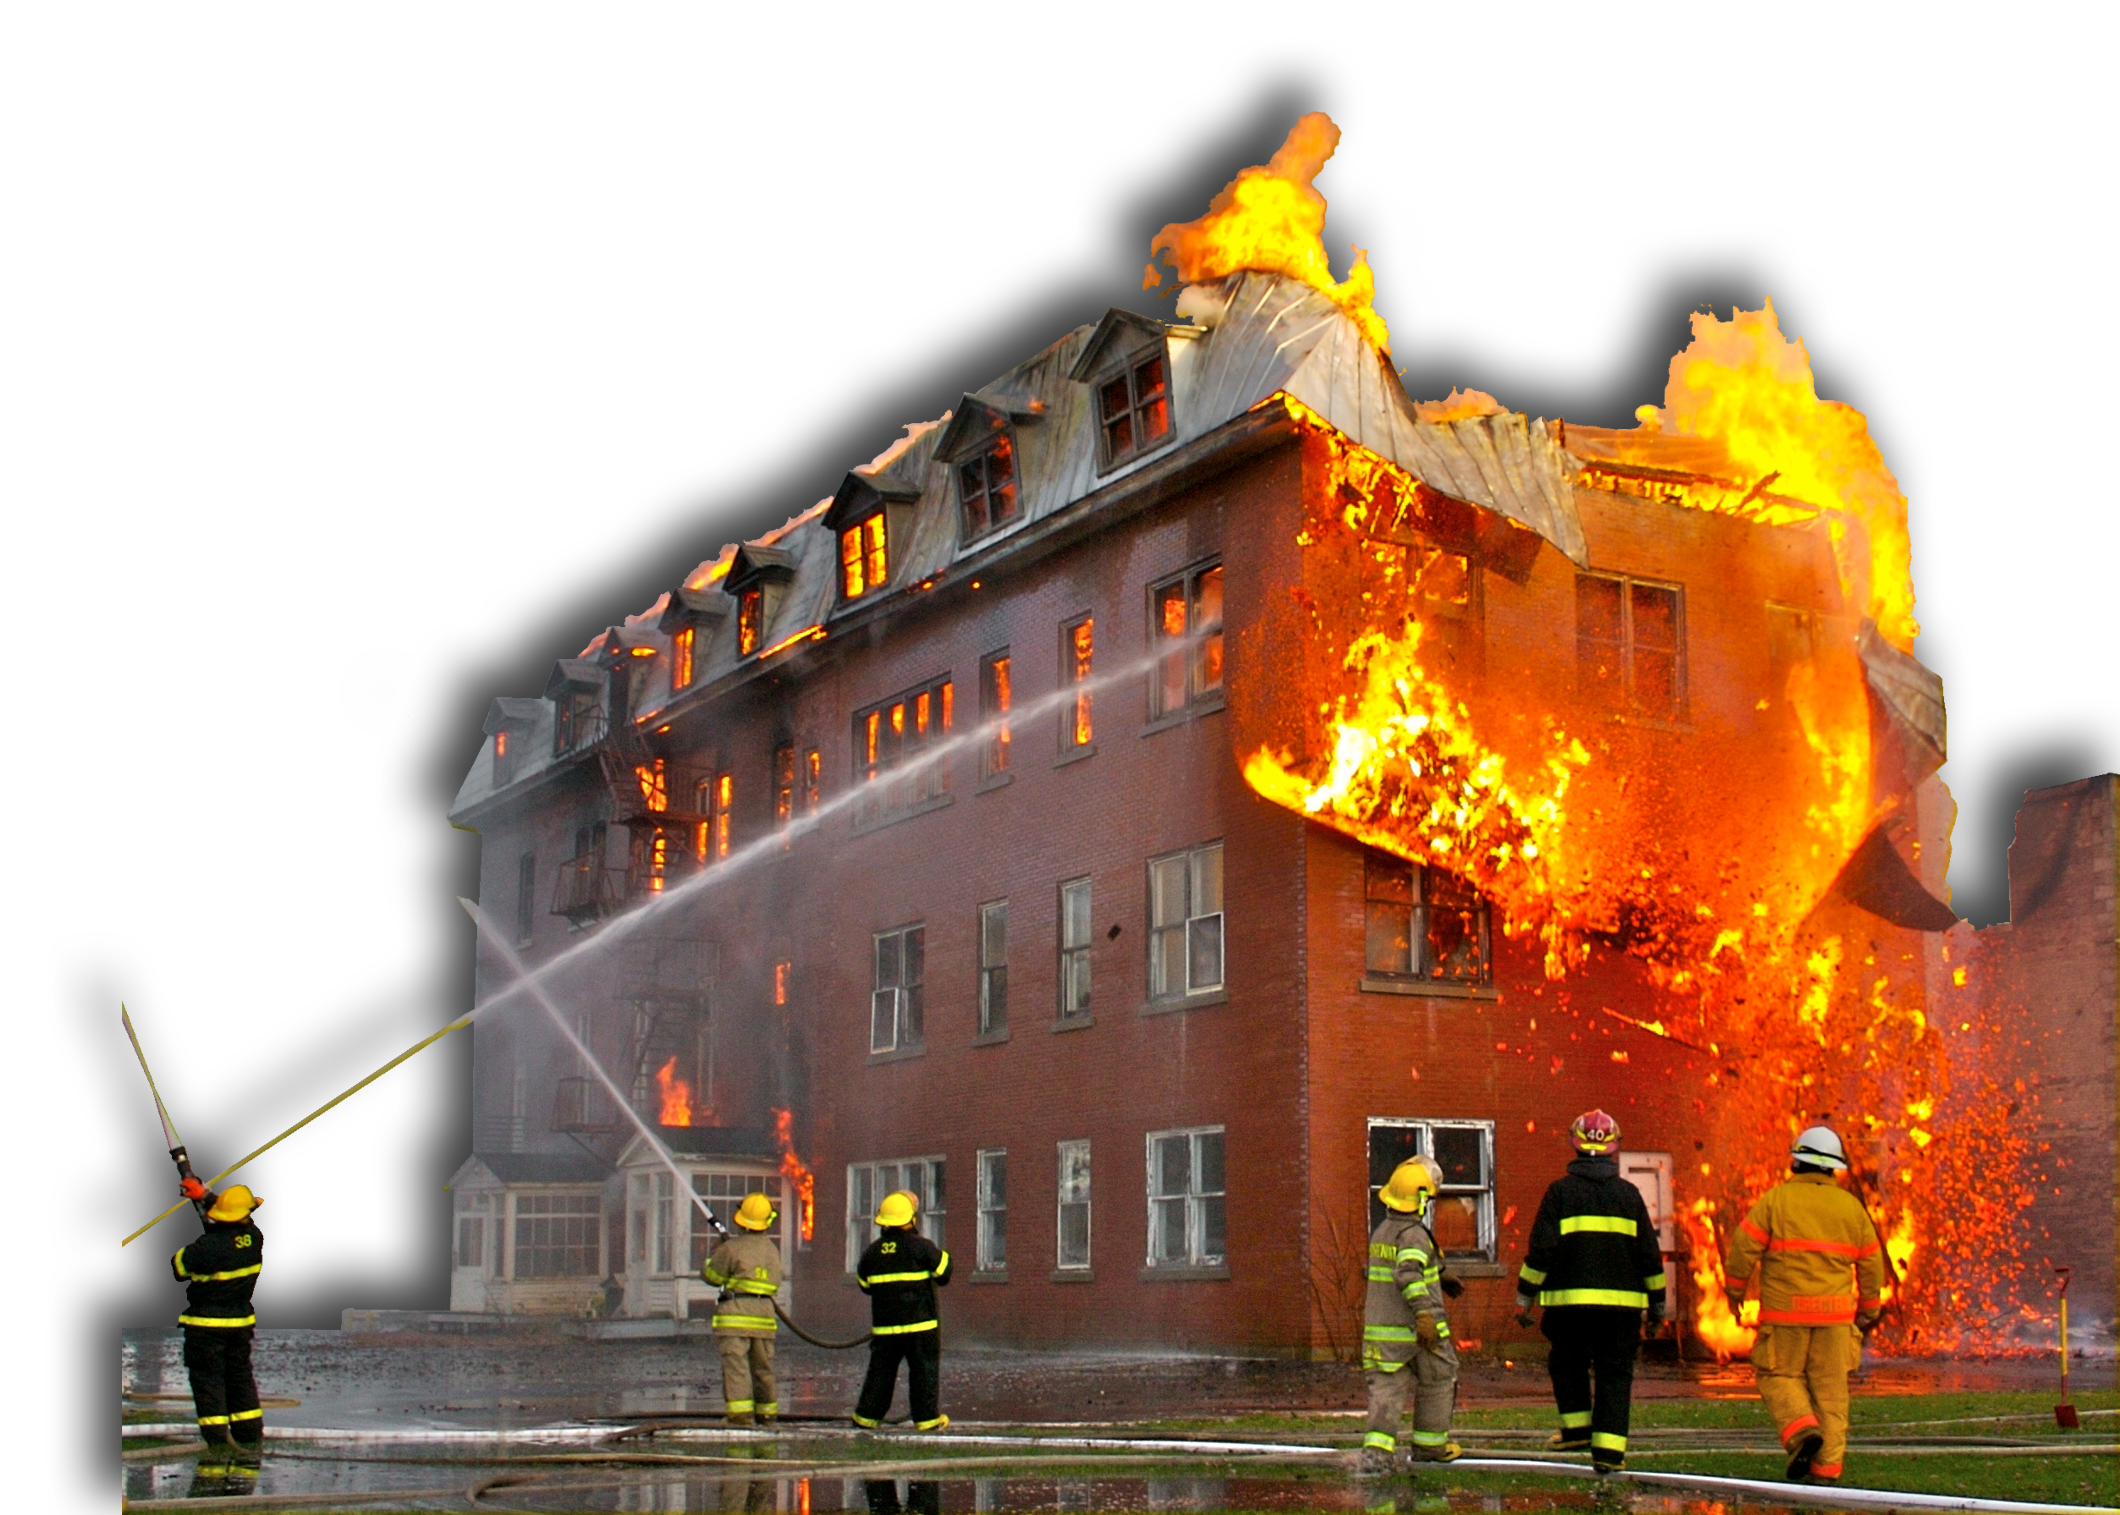 Building on fire png. Smoke and protection pointe